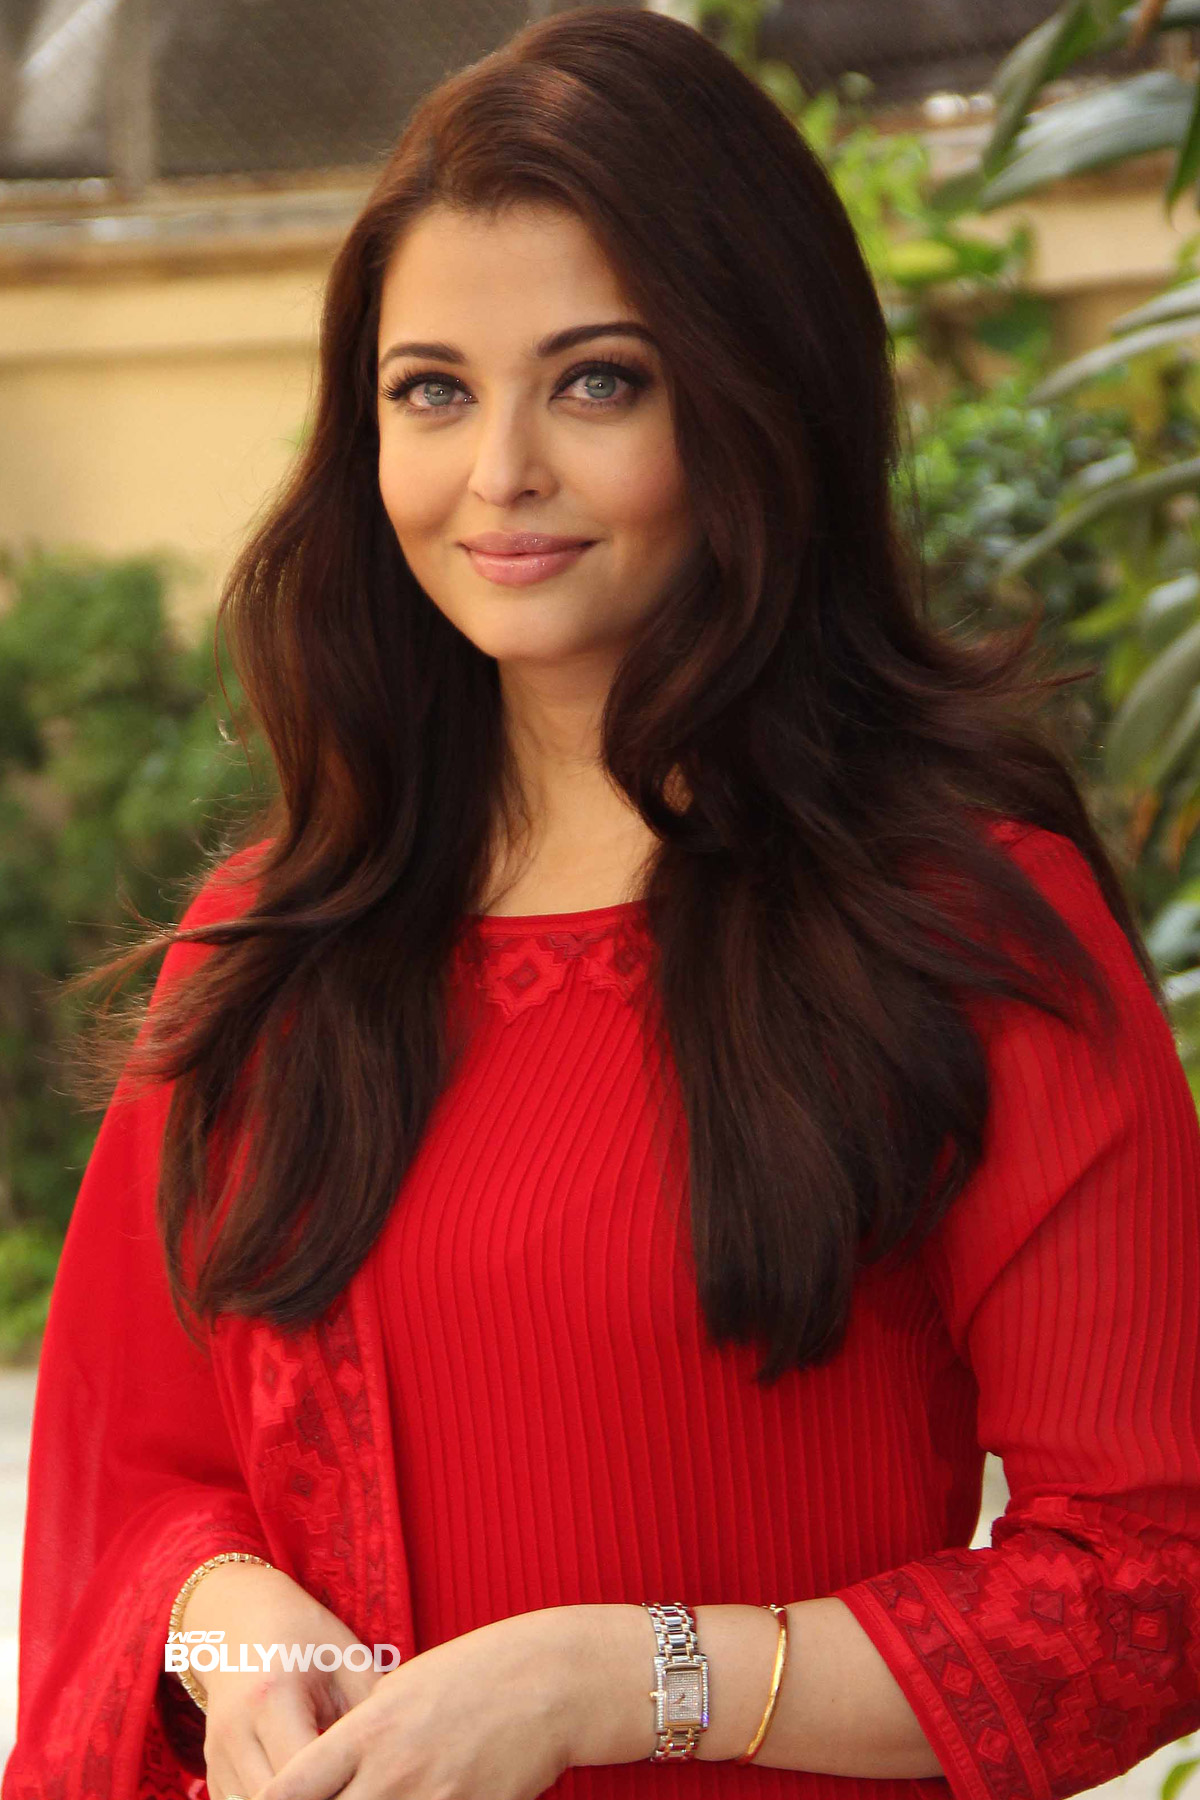 aishwarya rai, miss world 1994. Eg7wlwnl